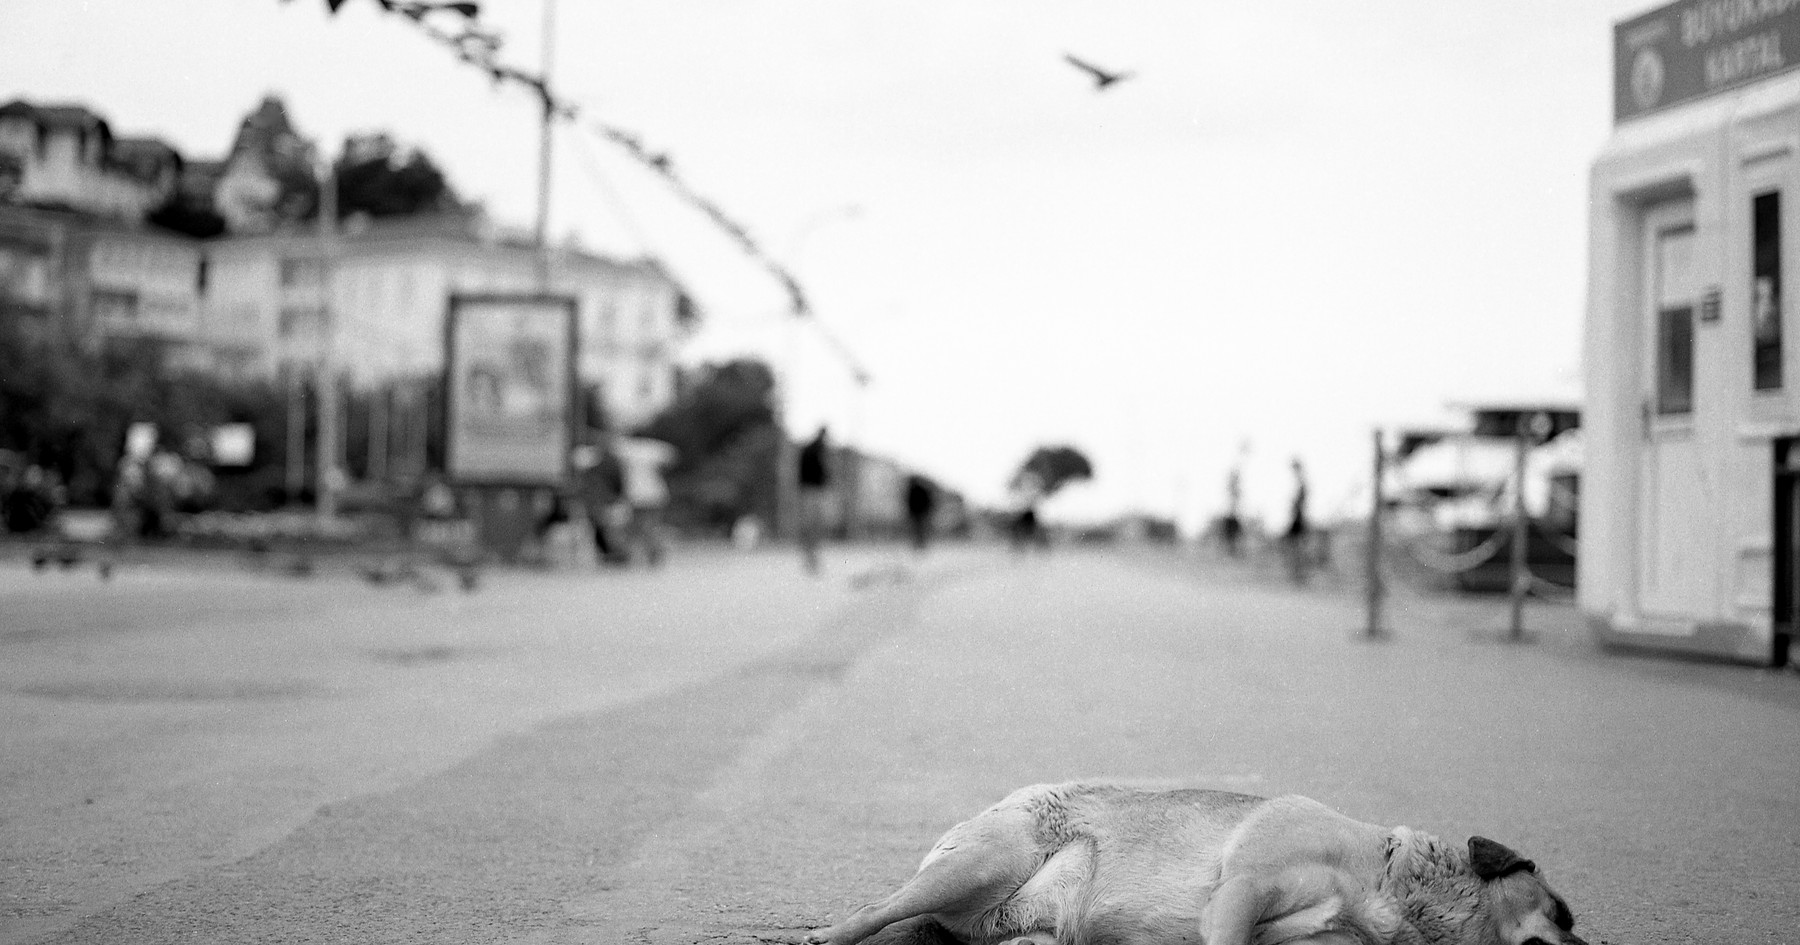 Dog laying in the street, 2017